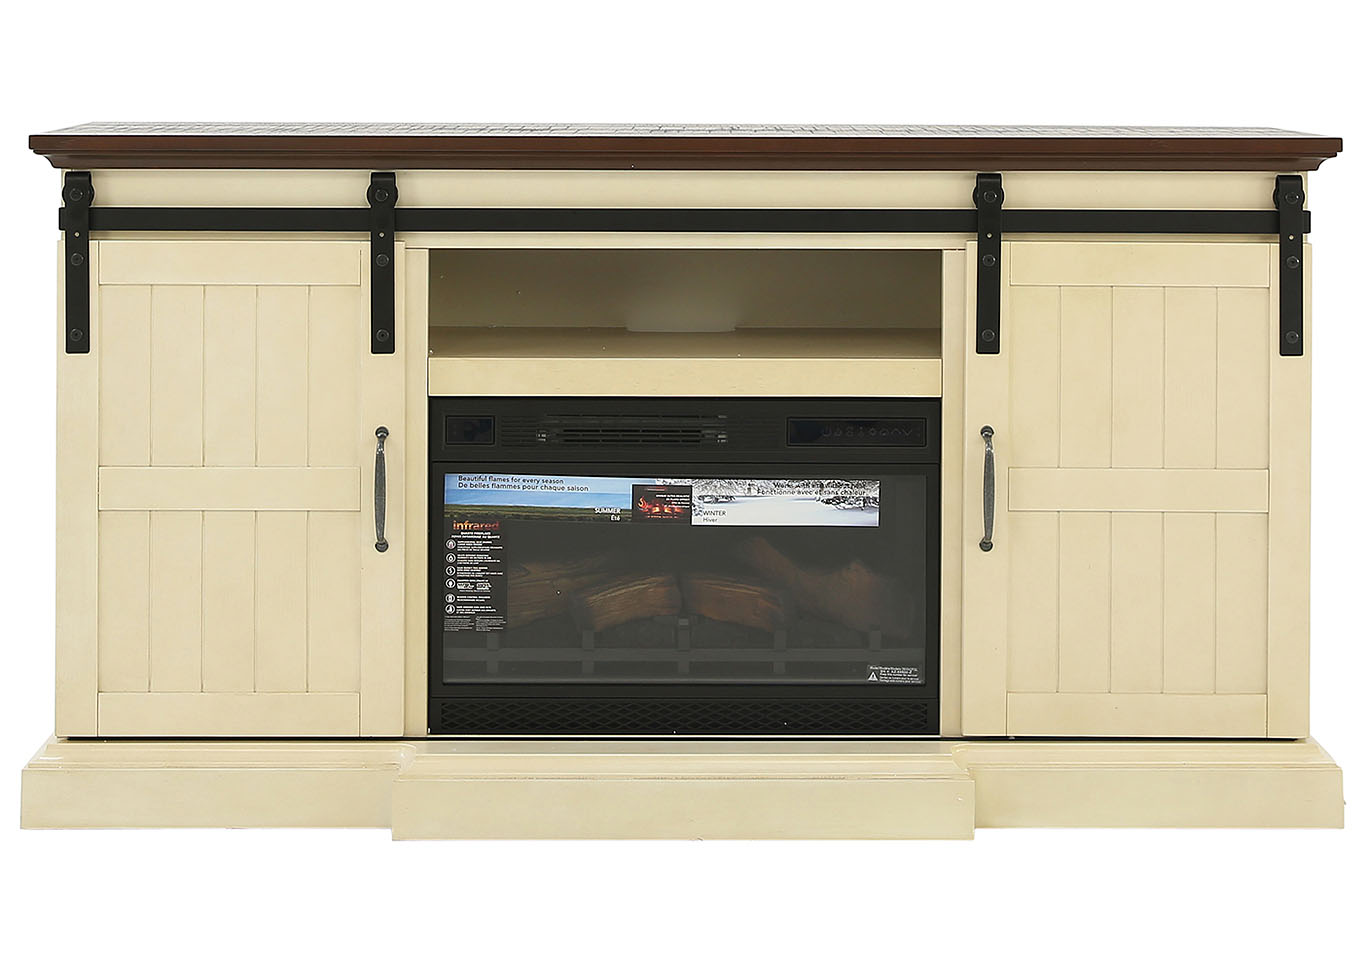 HOGAN FIREPLACE WITH INSERT,TWIN-STAR INTERNATIONAL